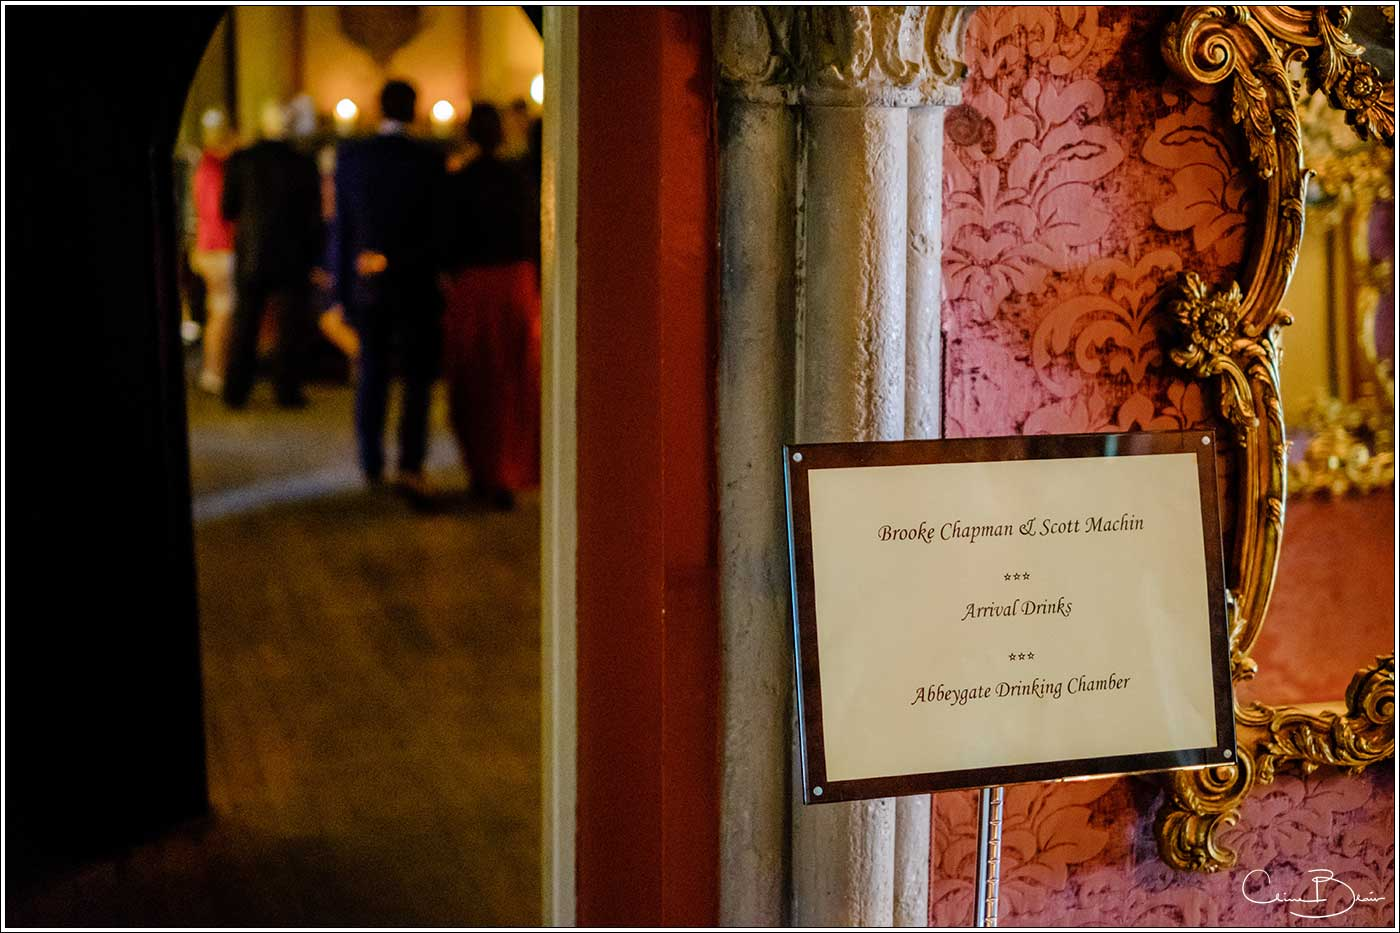 Coombe Abbey wedding photography showing sign for wedding ceremony